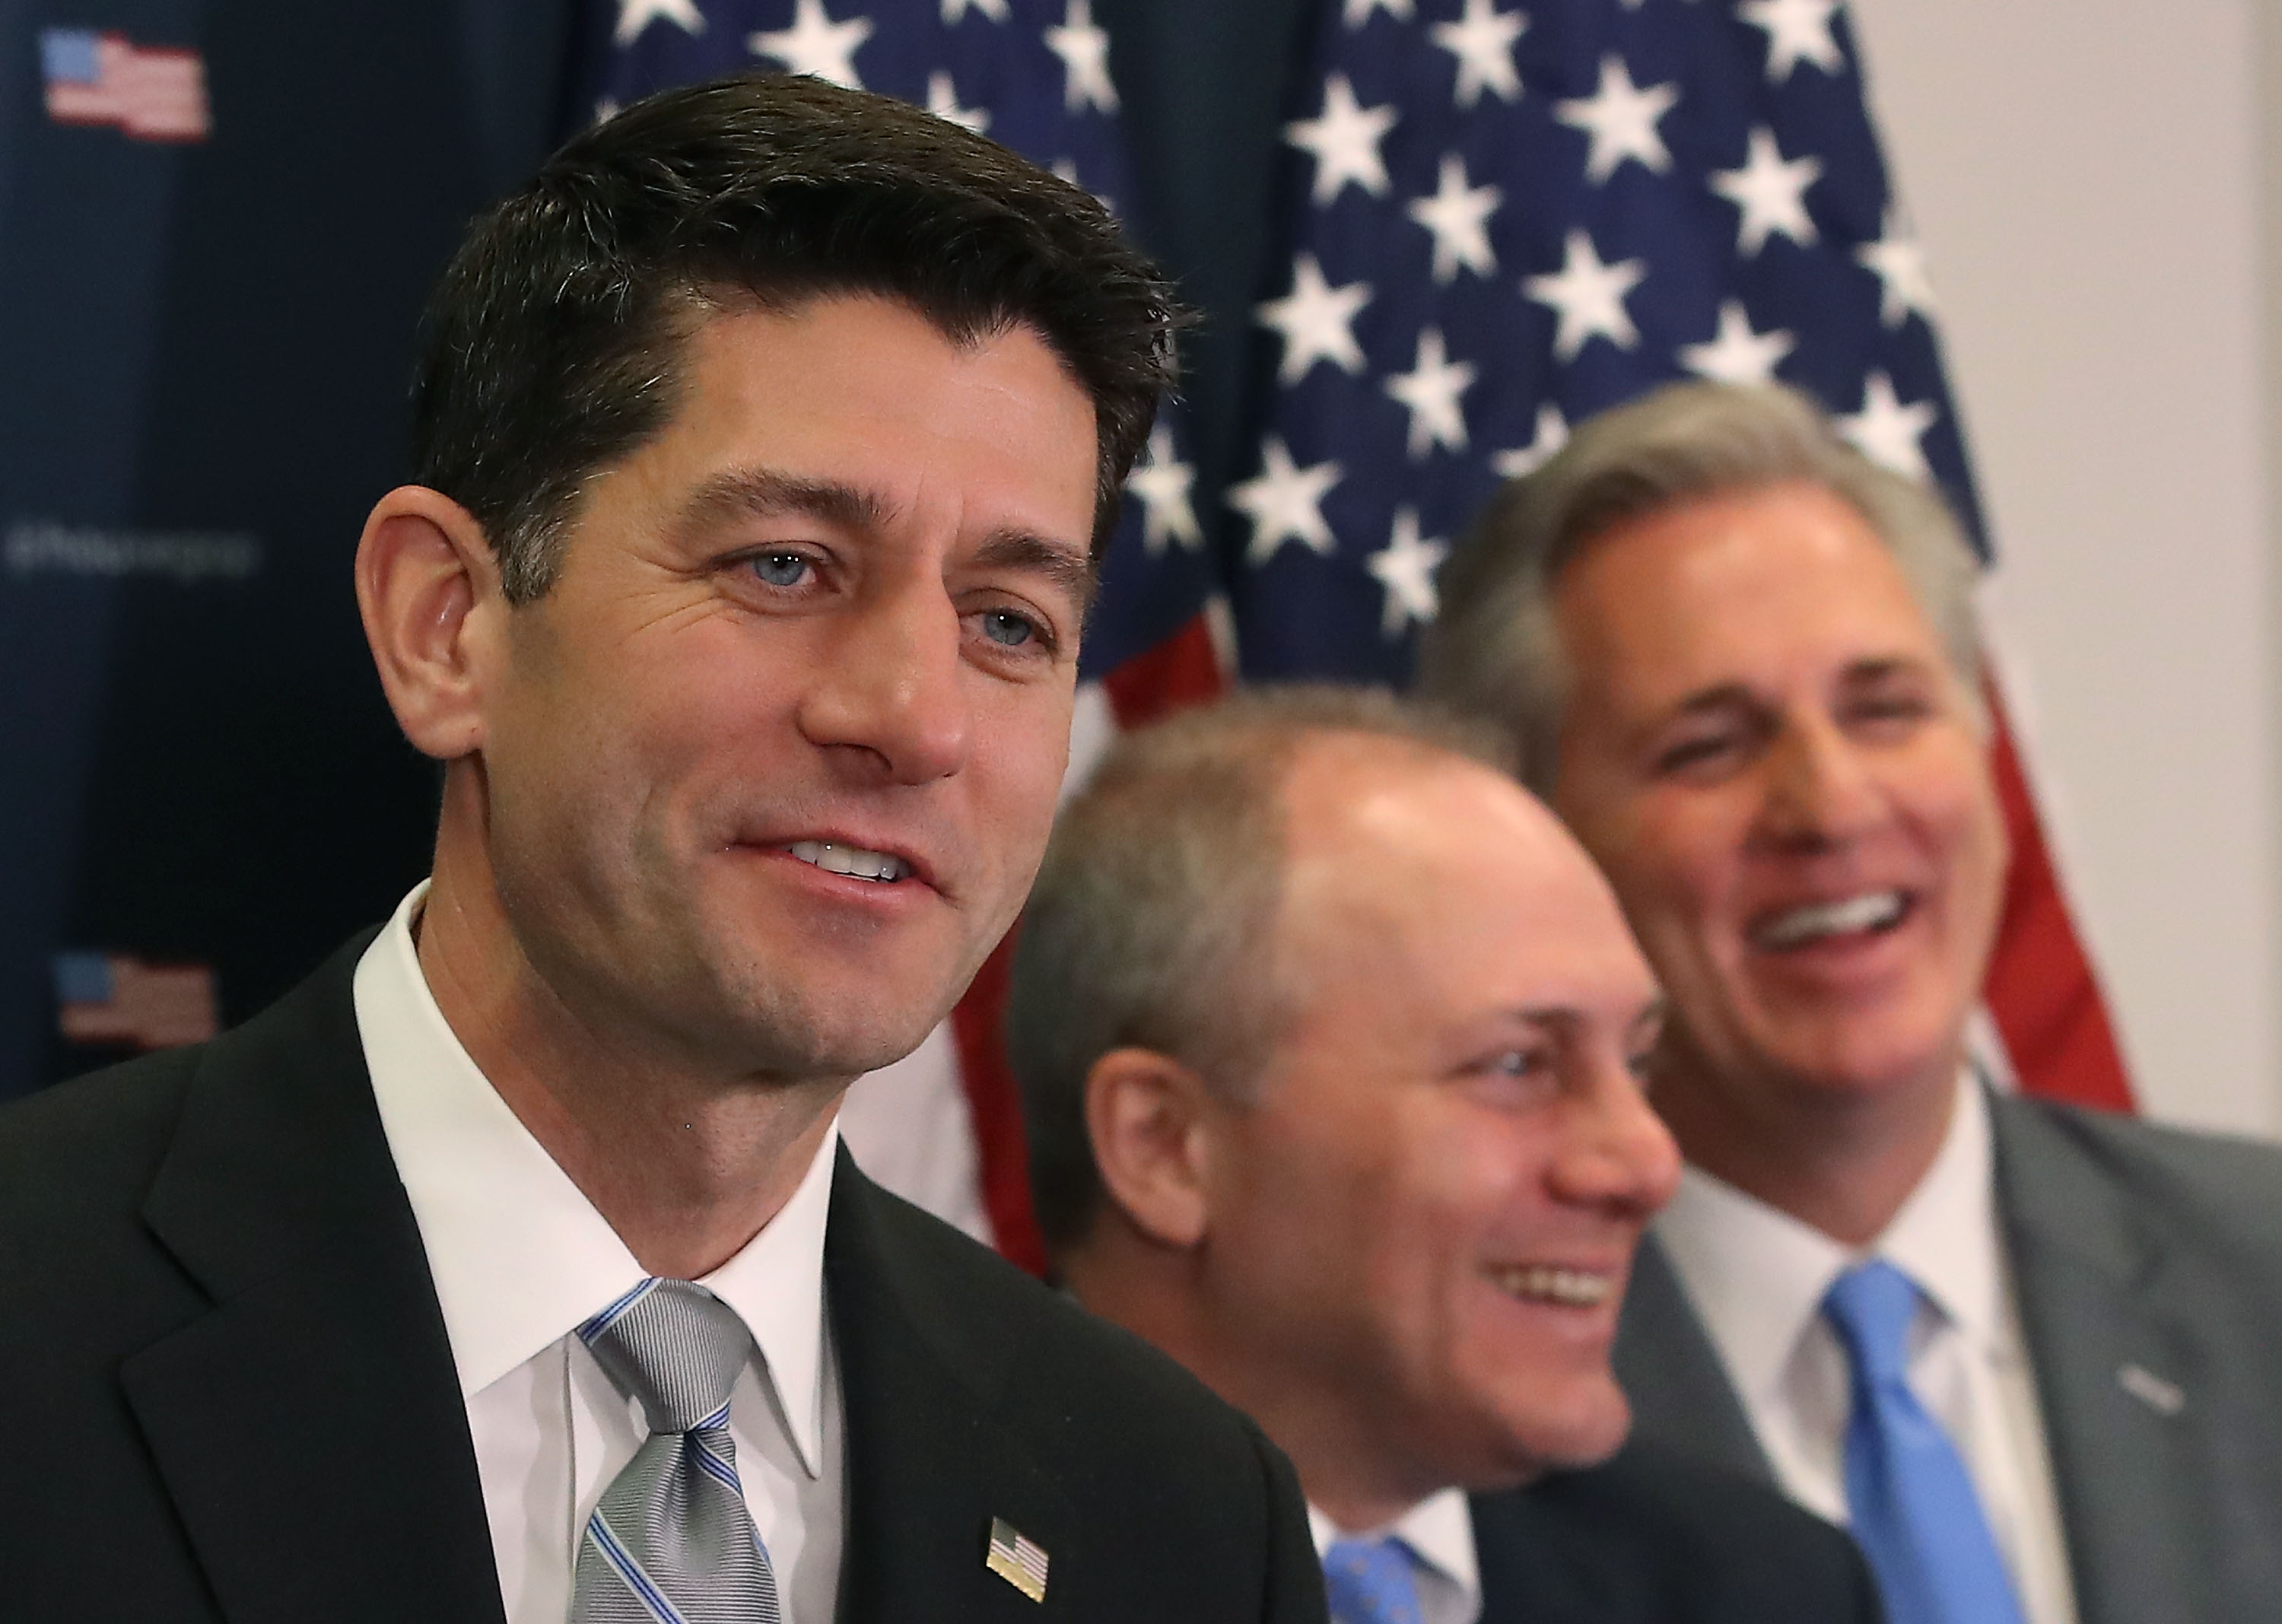 Top Republicans are already talking about cutting Medicare and Social Security next